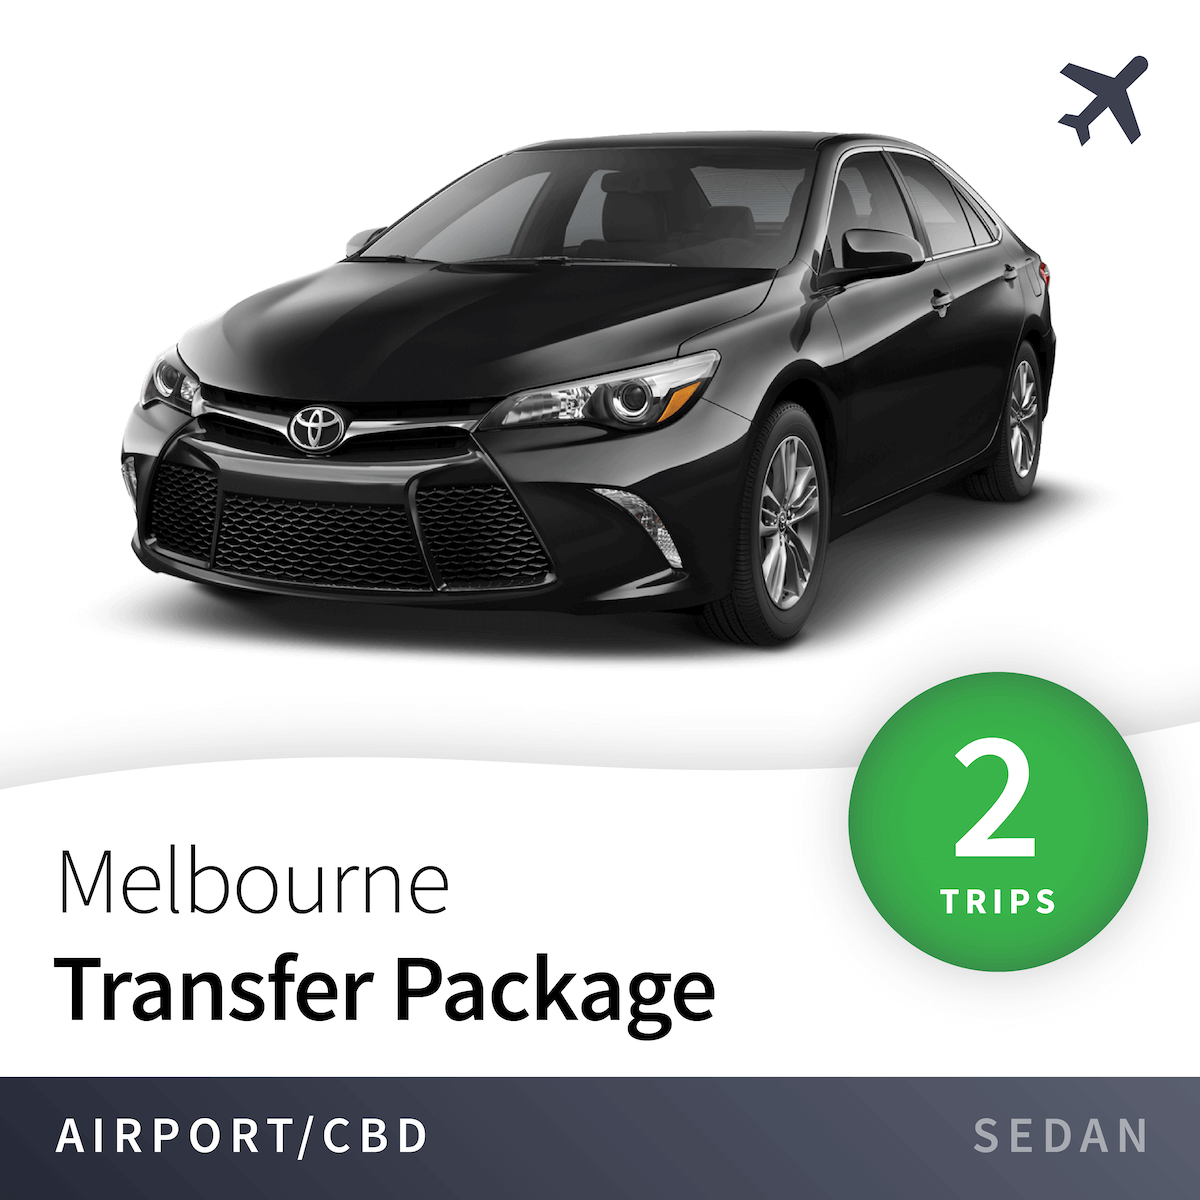 Melbourne Airport Transfer Package - Sedan (2 Trips) 7